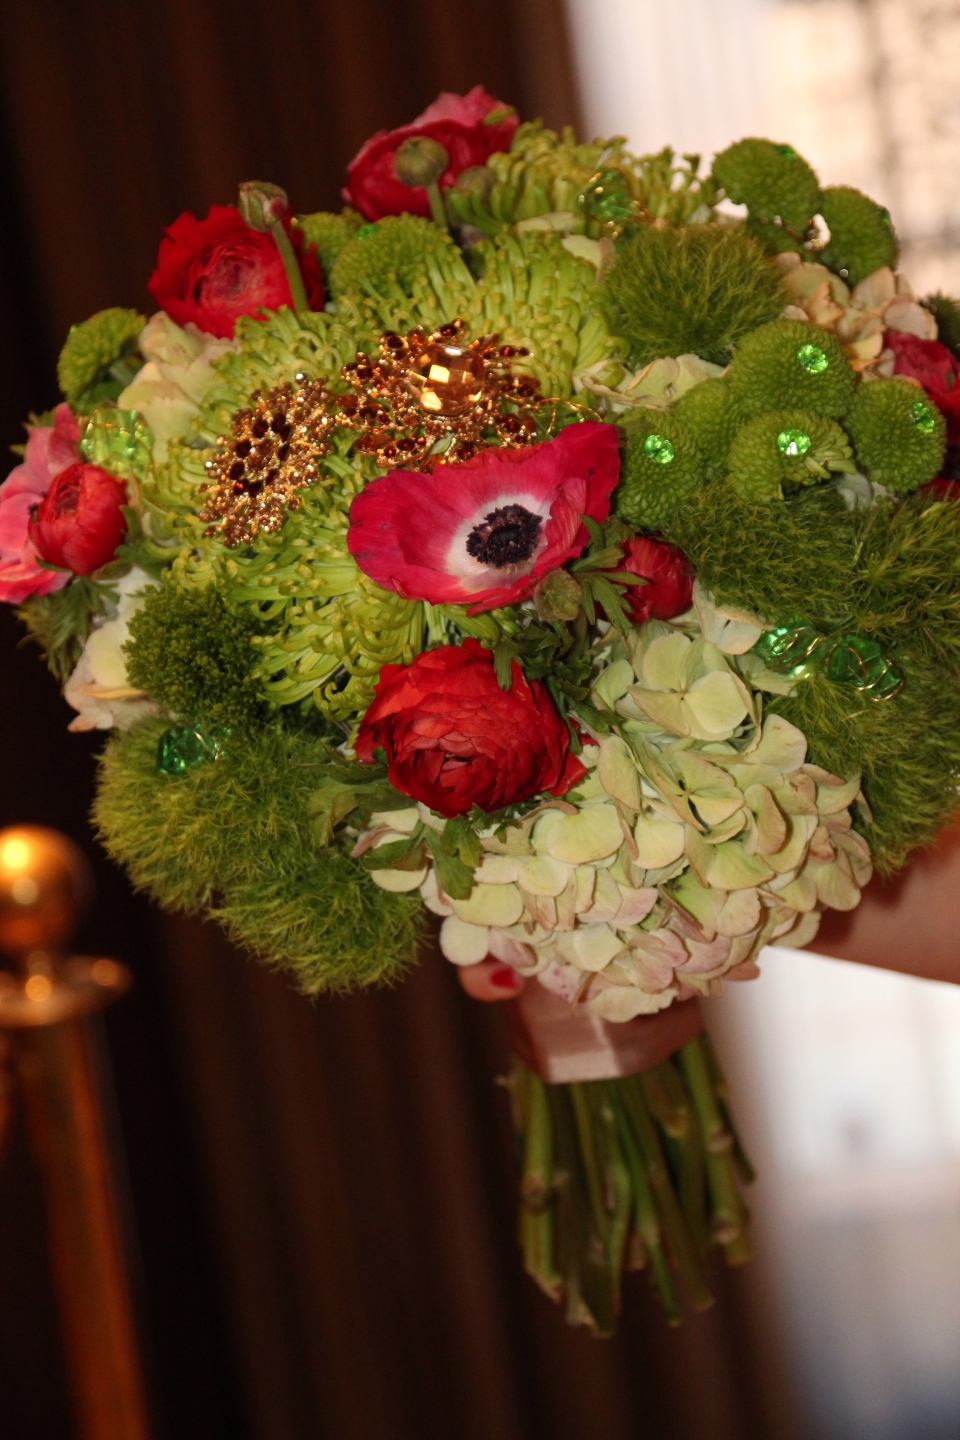 Wizard of Oz themed bridal bouquet with red poppies and emerald accents